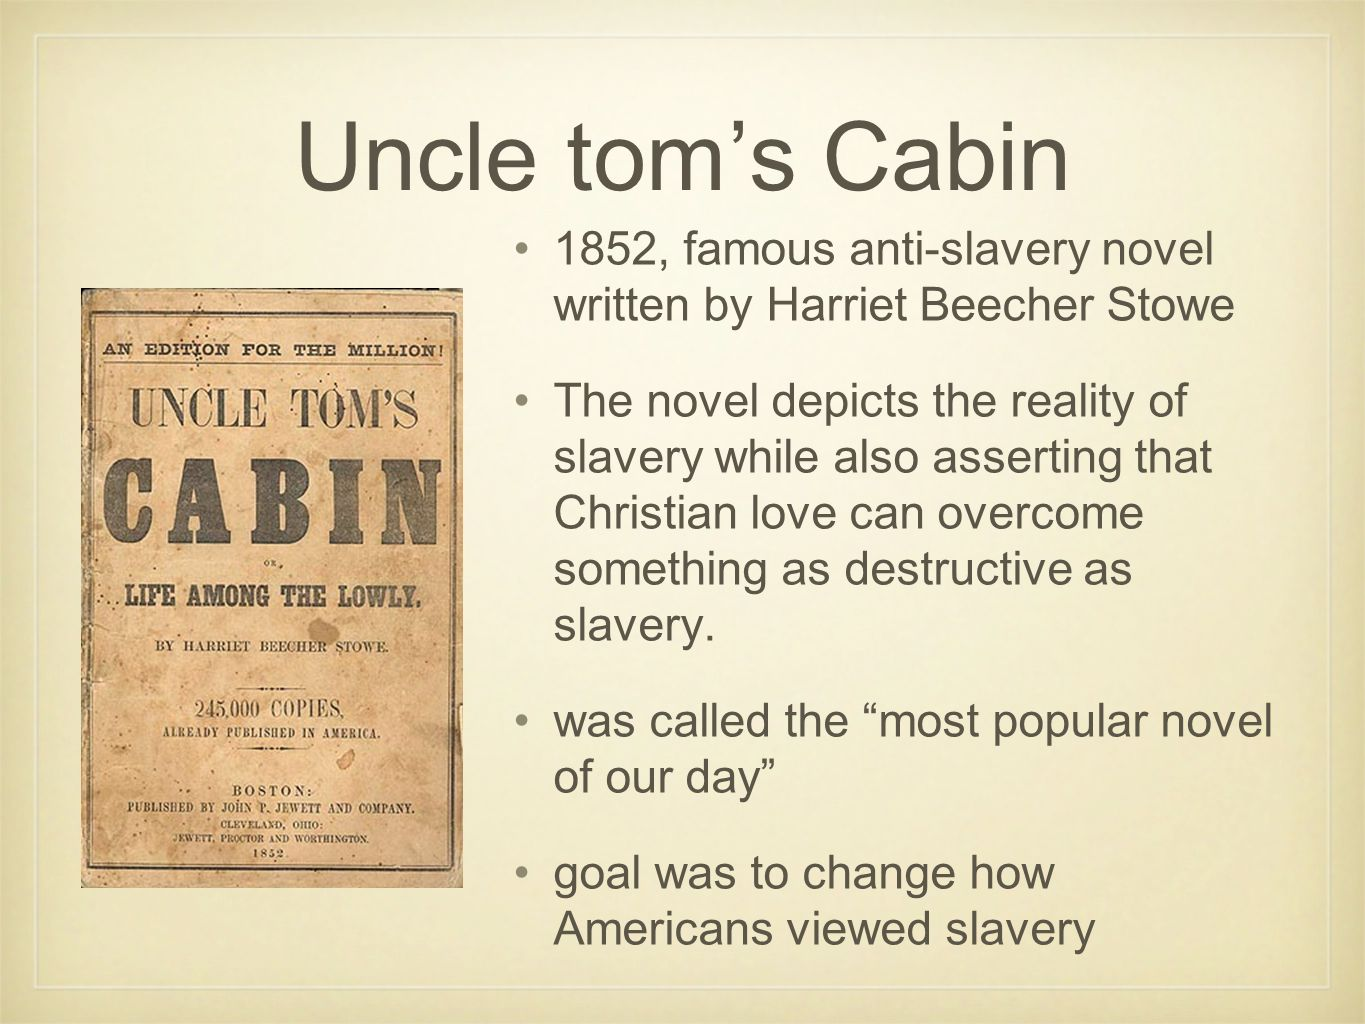 Uncle tom's Cabin 1852, famous anti-slavery novel written by Harriet Beecher Stowe The novel depicts the reality of slavery while also asserting that